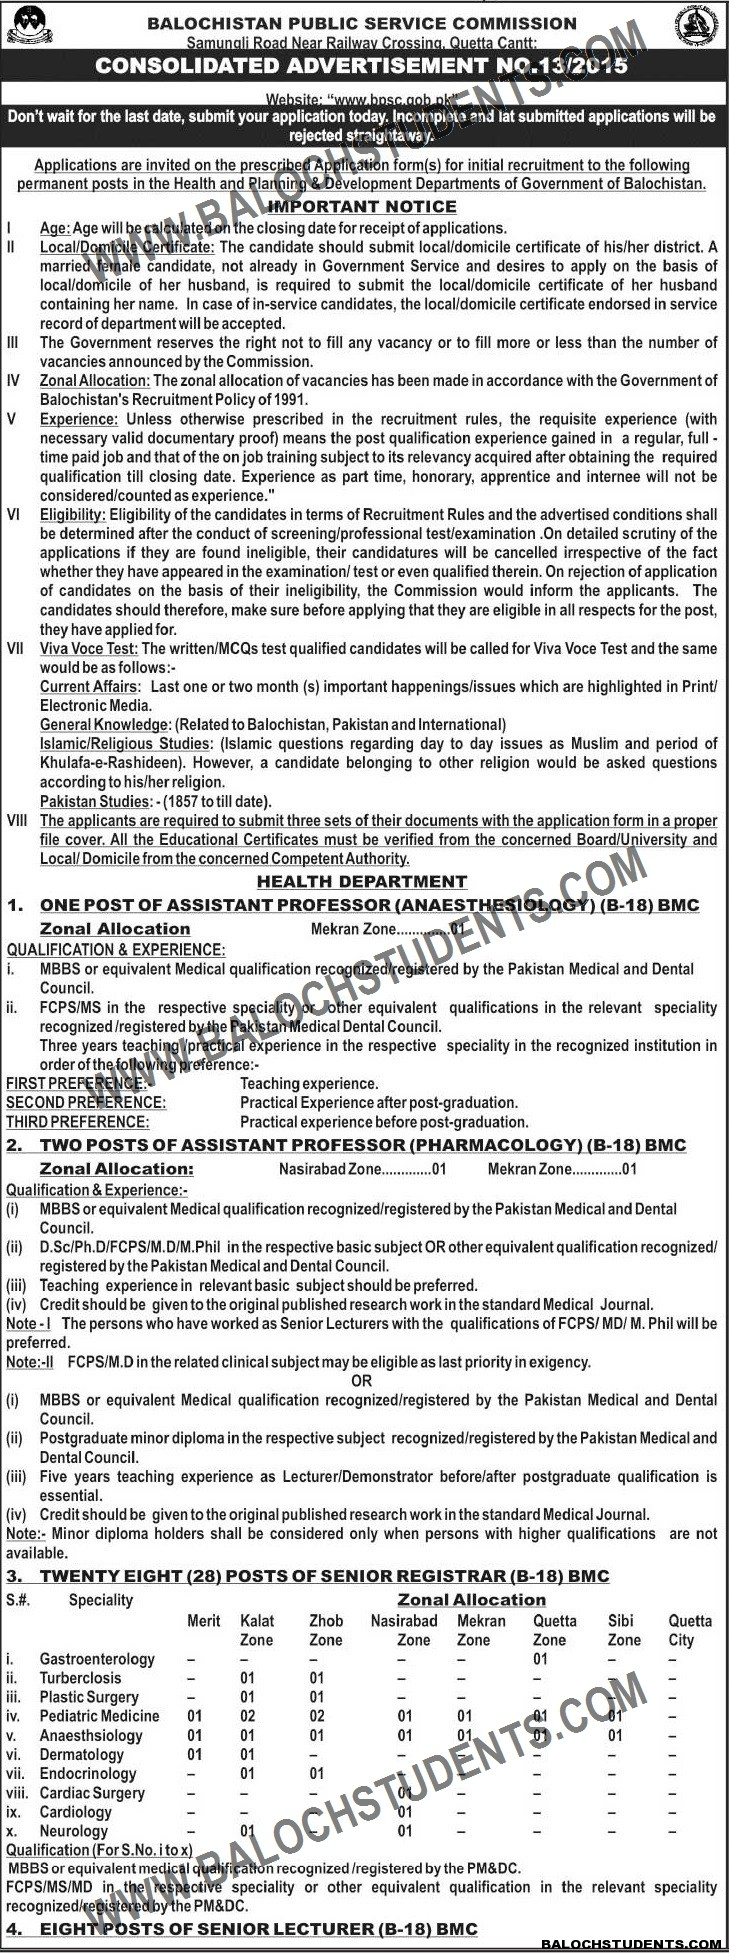 Jobs Opportunities- Balochistan Public Service Commission- Advertisement No. 132015 (1)